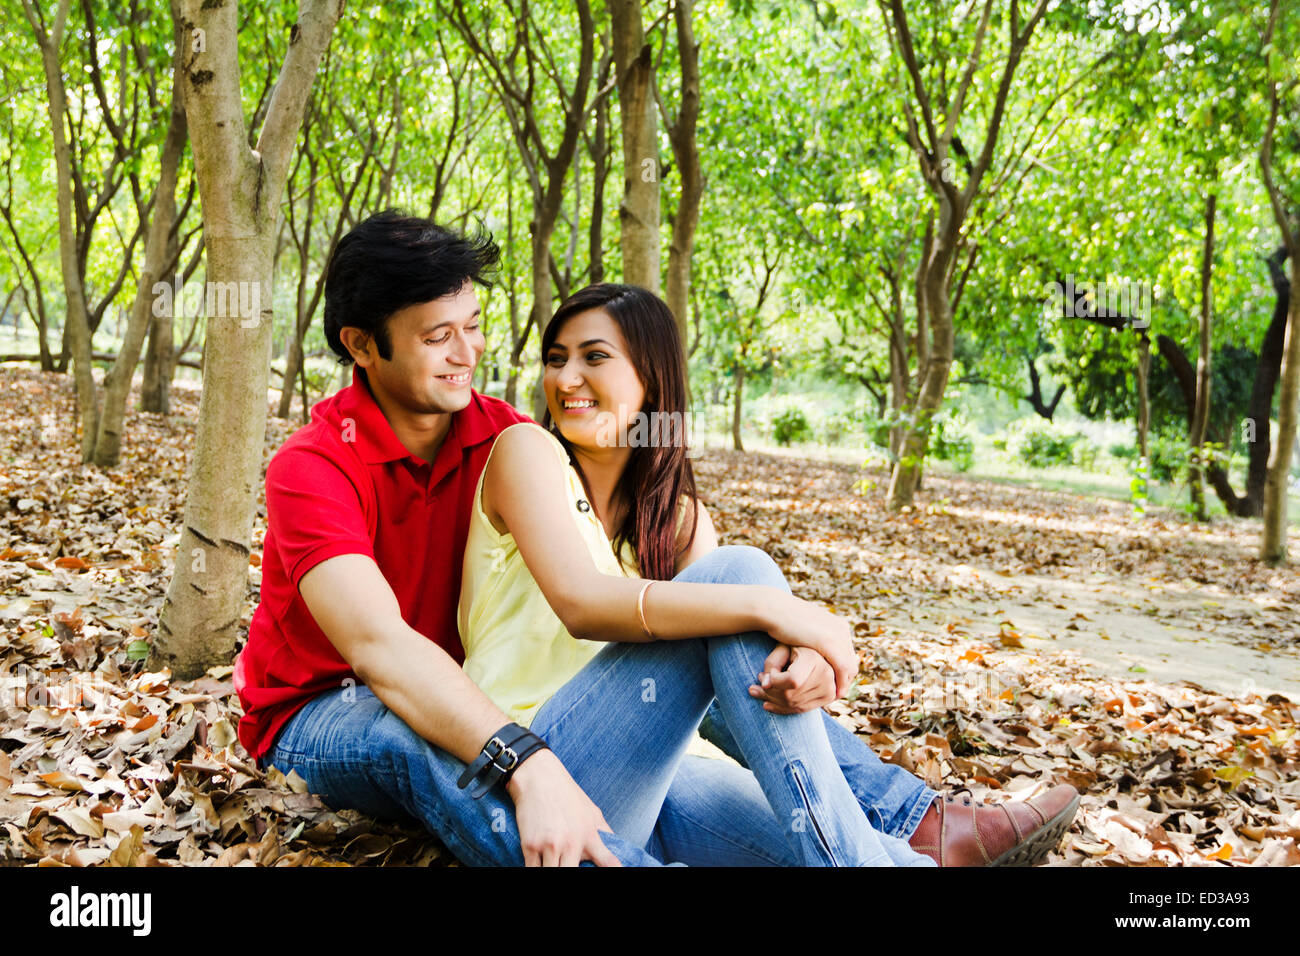 Indian Beautiful Couple Park Romance Stock Photo Royalty Free Image 76905951 Alamy